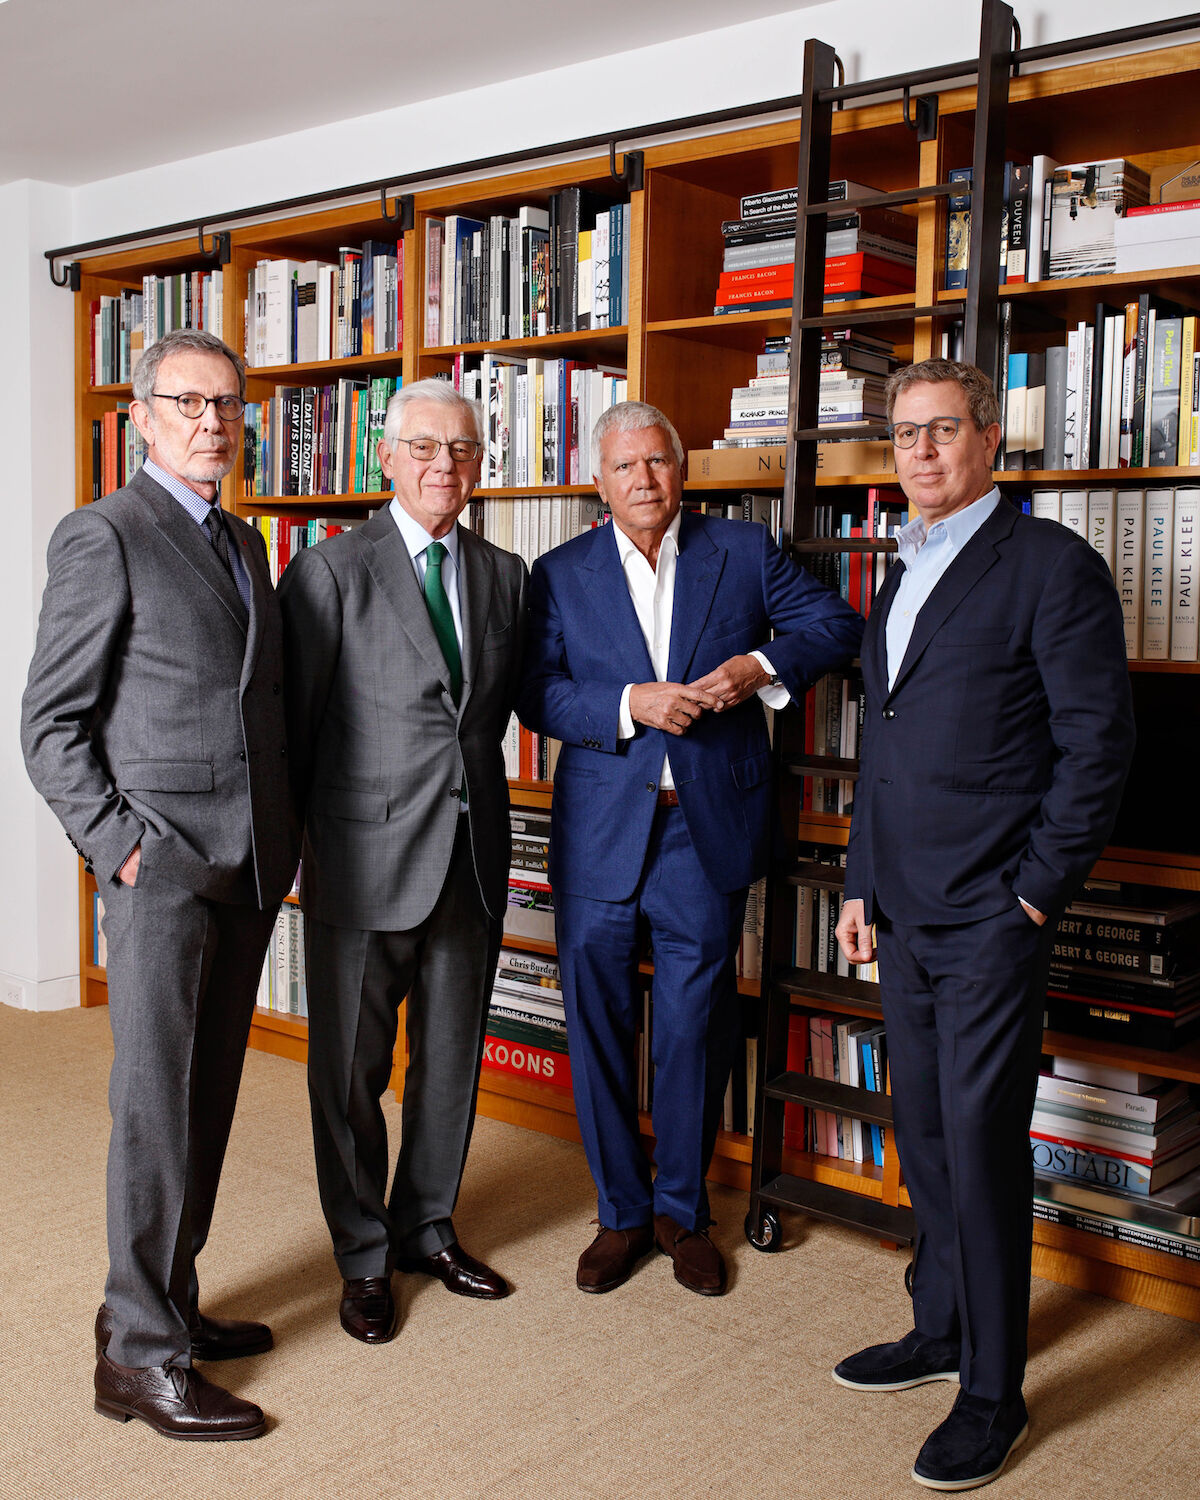 From left to right: Arne Glimcher, Bill Acquavella, Larry Gagosian, and Marc Glimcher. Photo © Axel Dupeux.